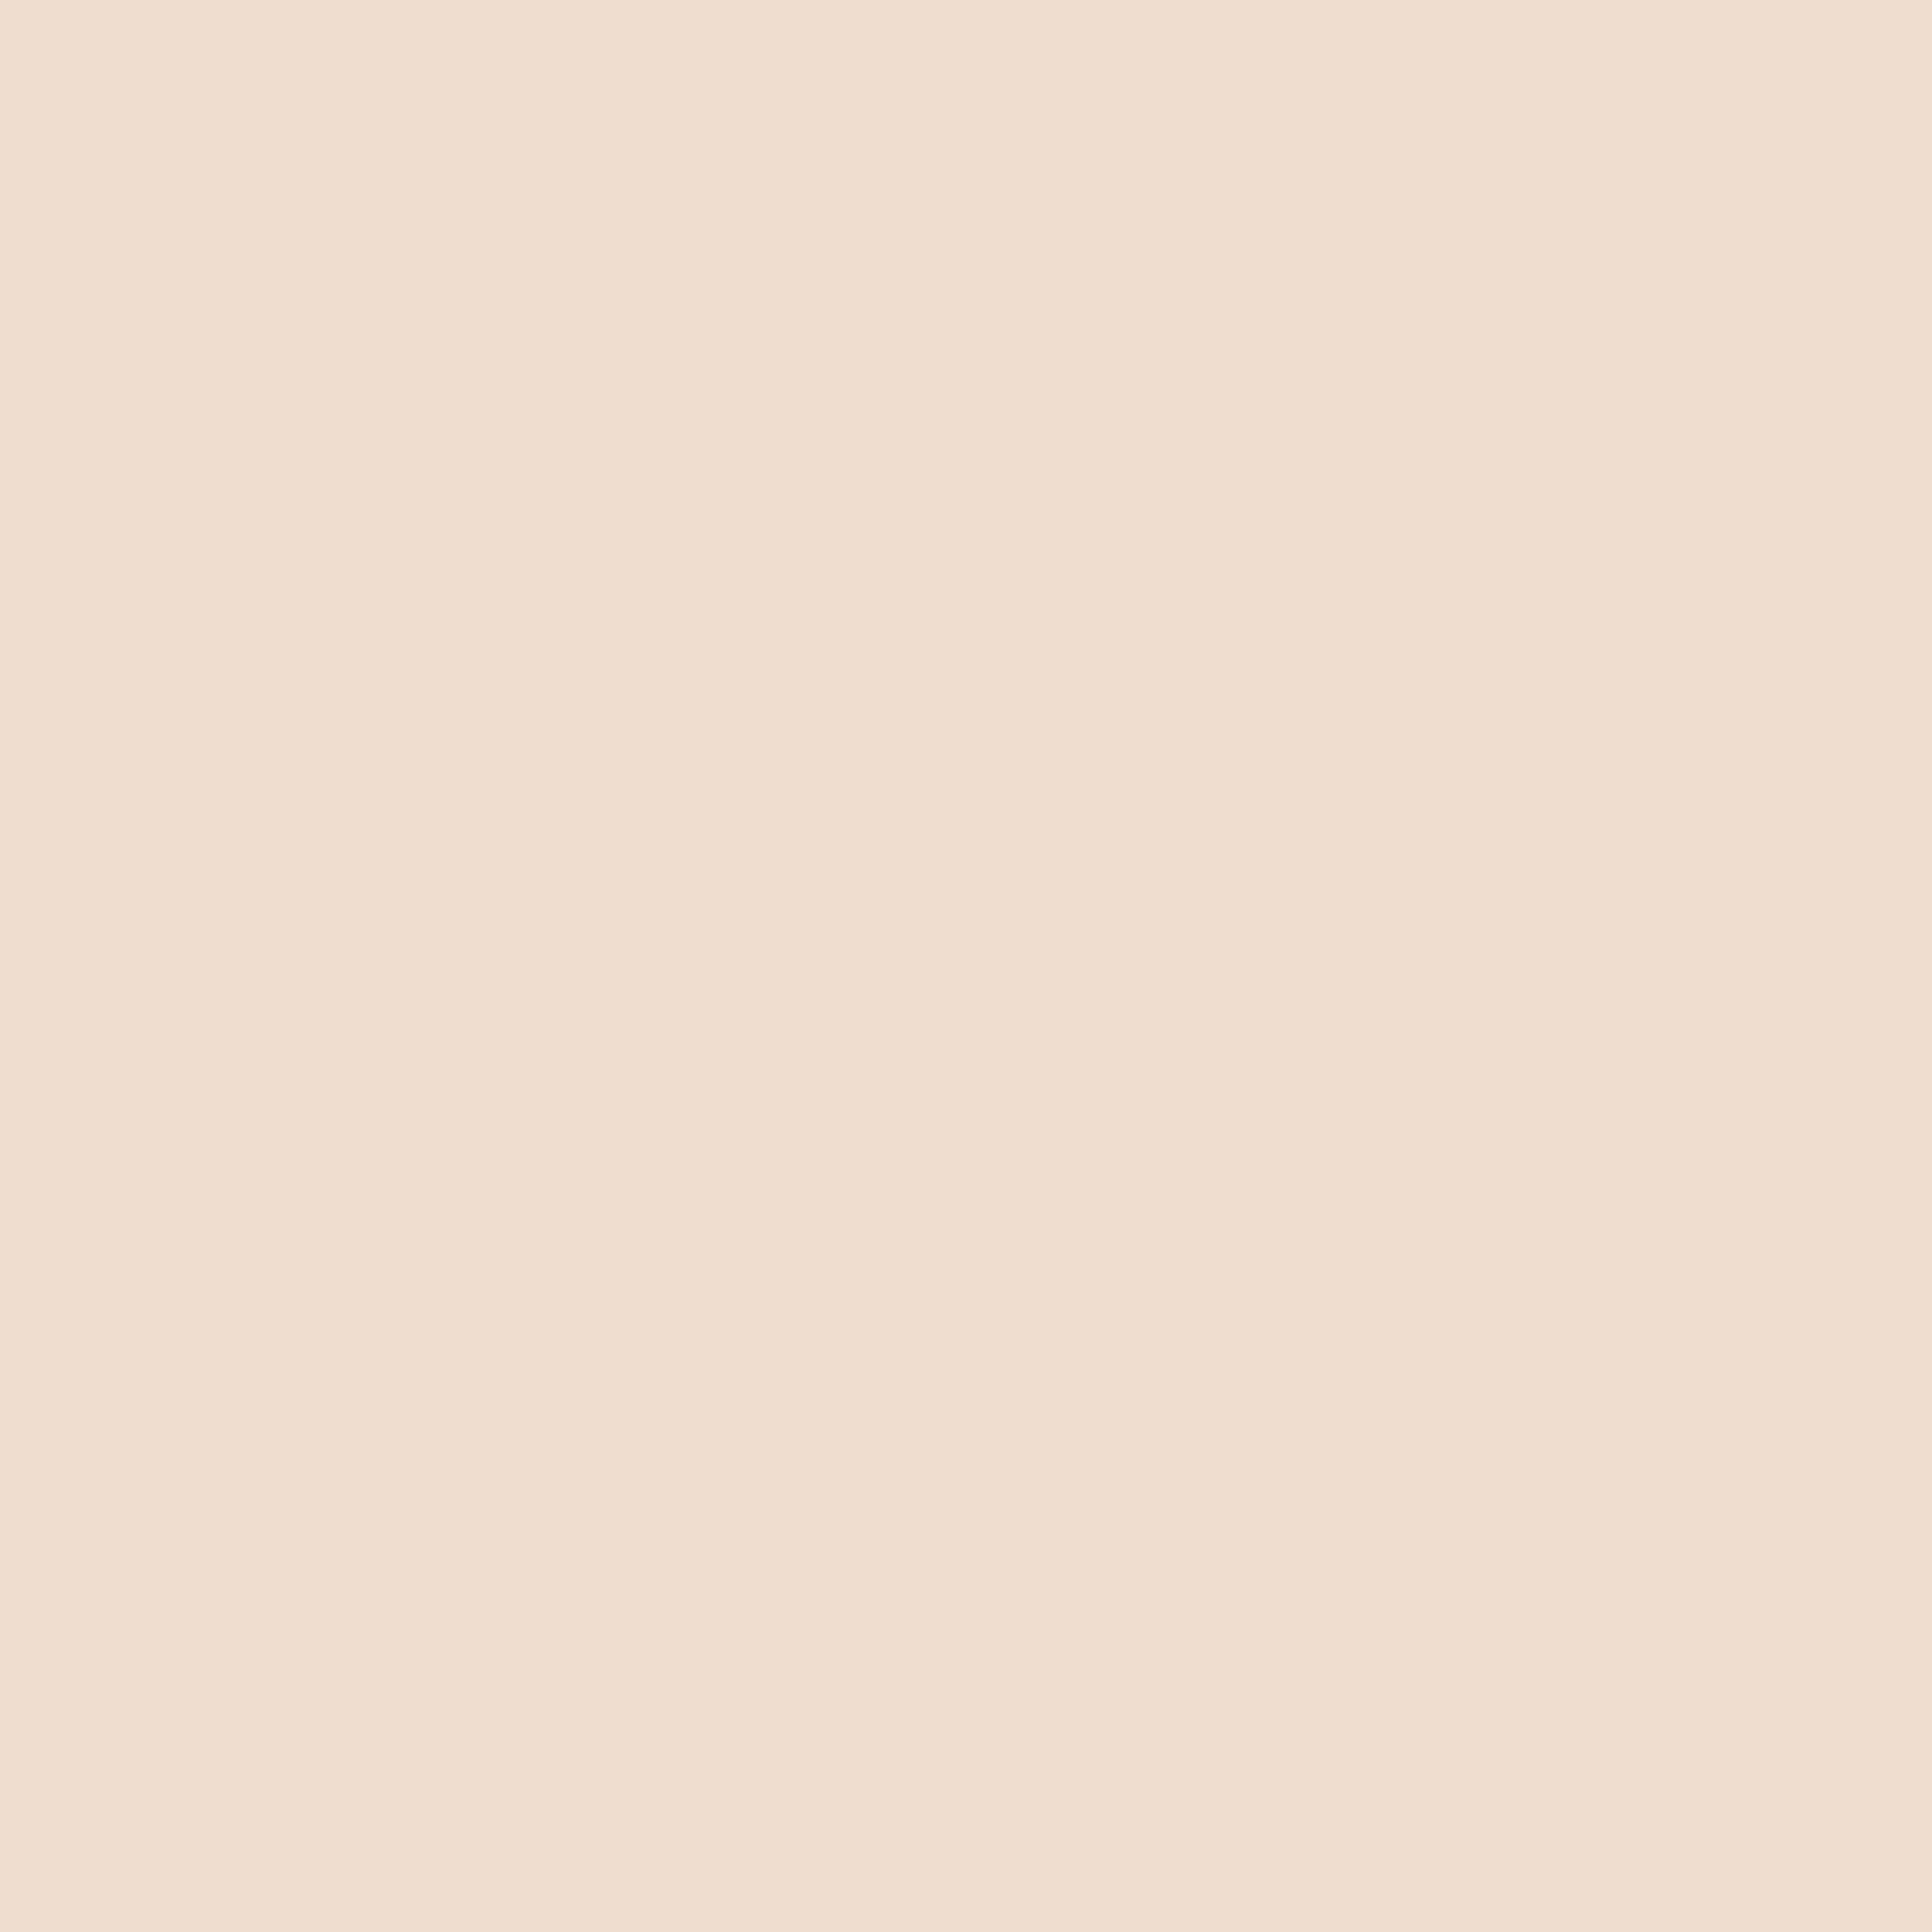 3600x3600 Almond Solid Color Background